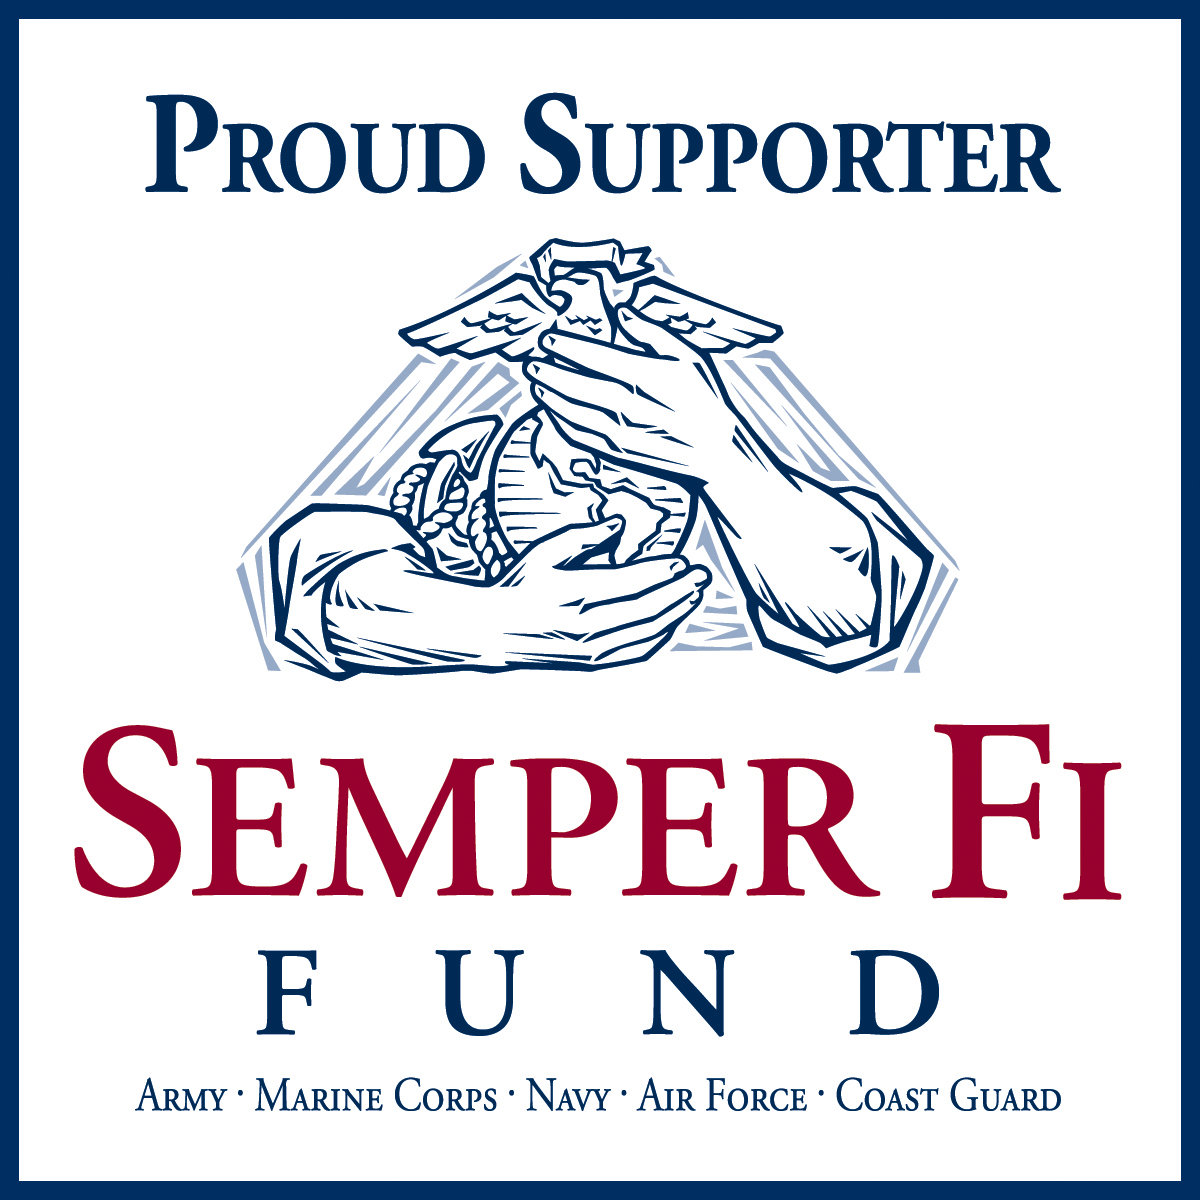 Fish Window Cleaning is proud to support Semper Fi Fund.